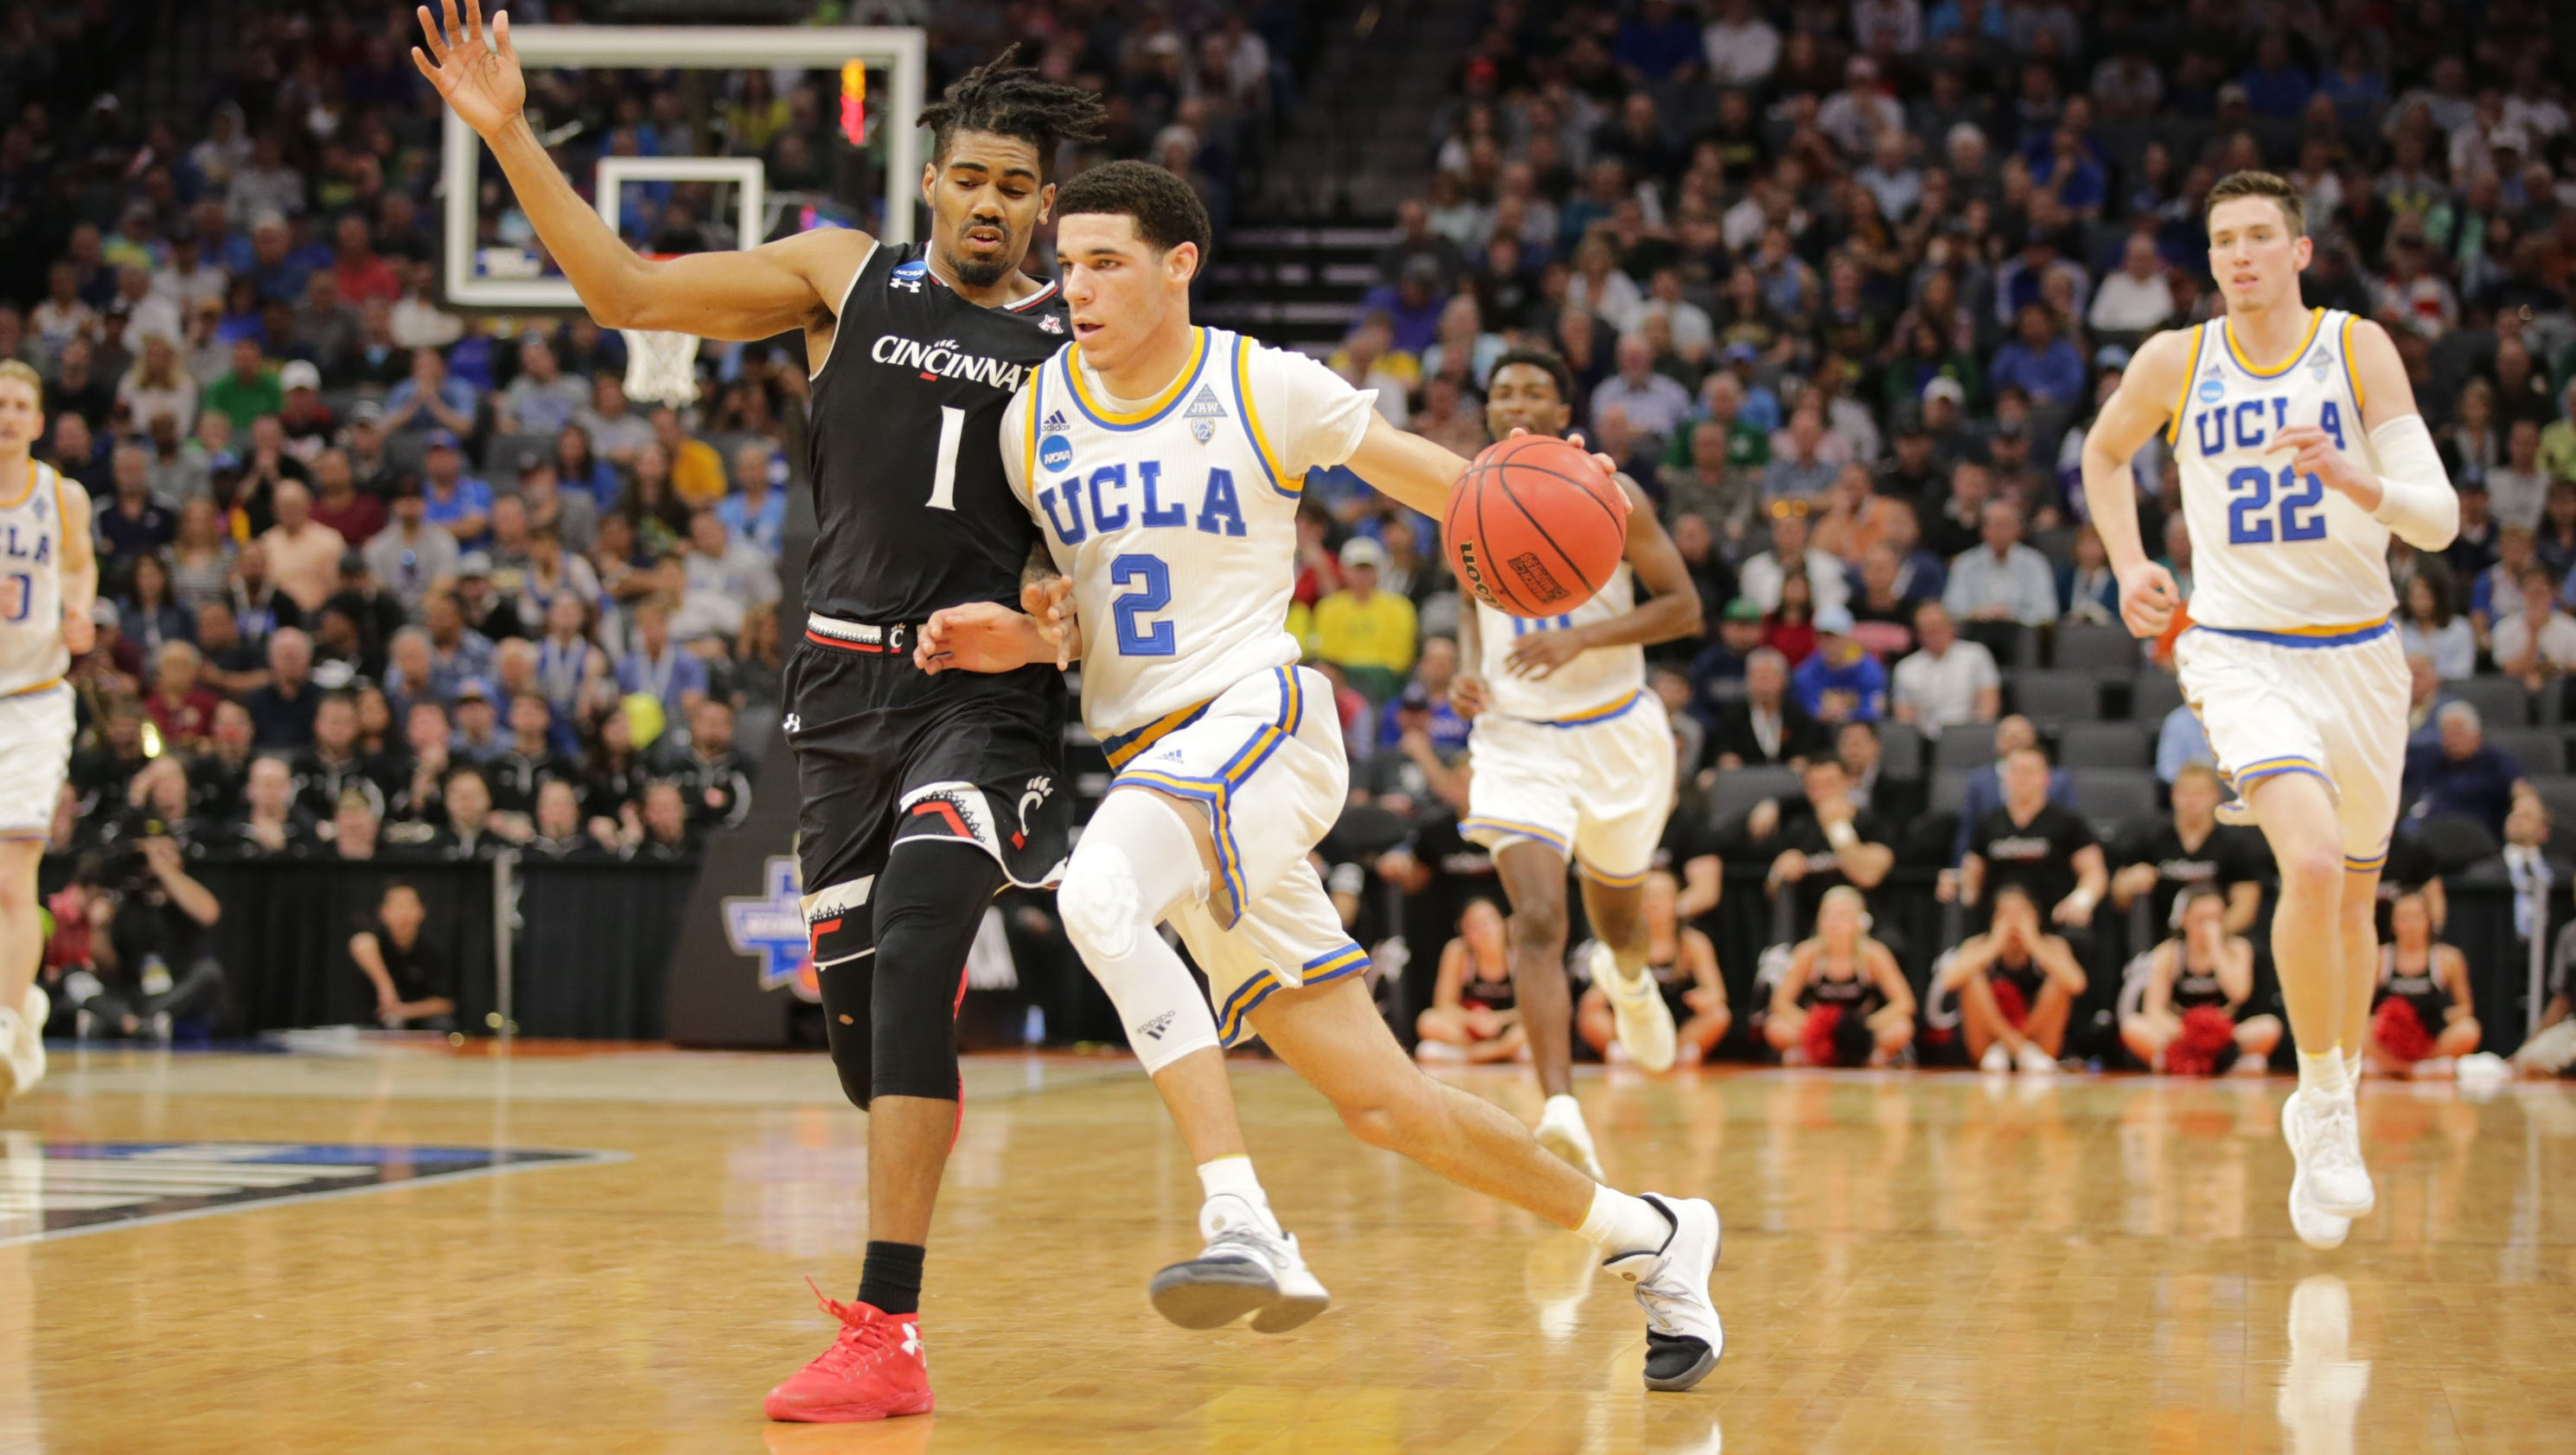 professional basketball vs ncaa college basketball How much more likely are you to play in division i college basketball if your dad  played in the nba jon wertheim of sports illustrated.